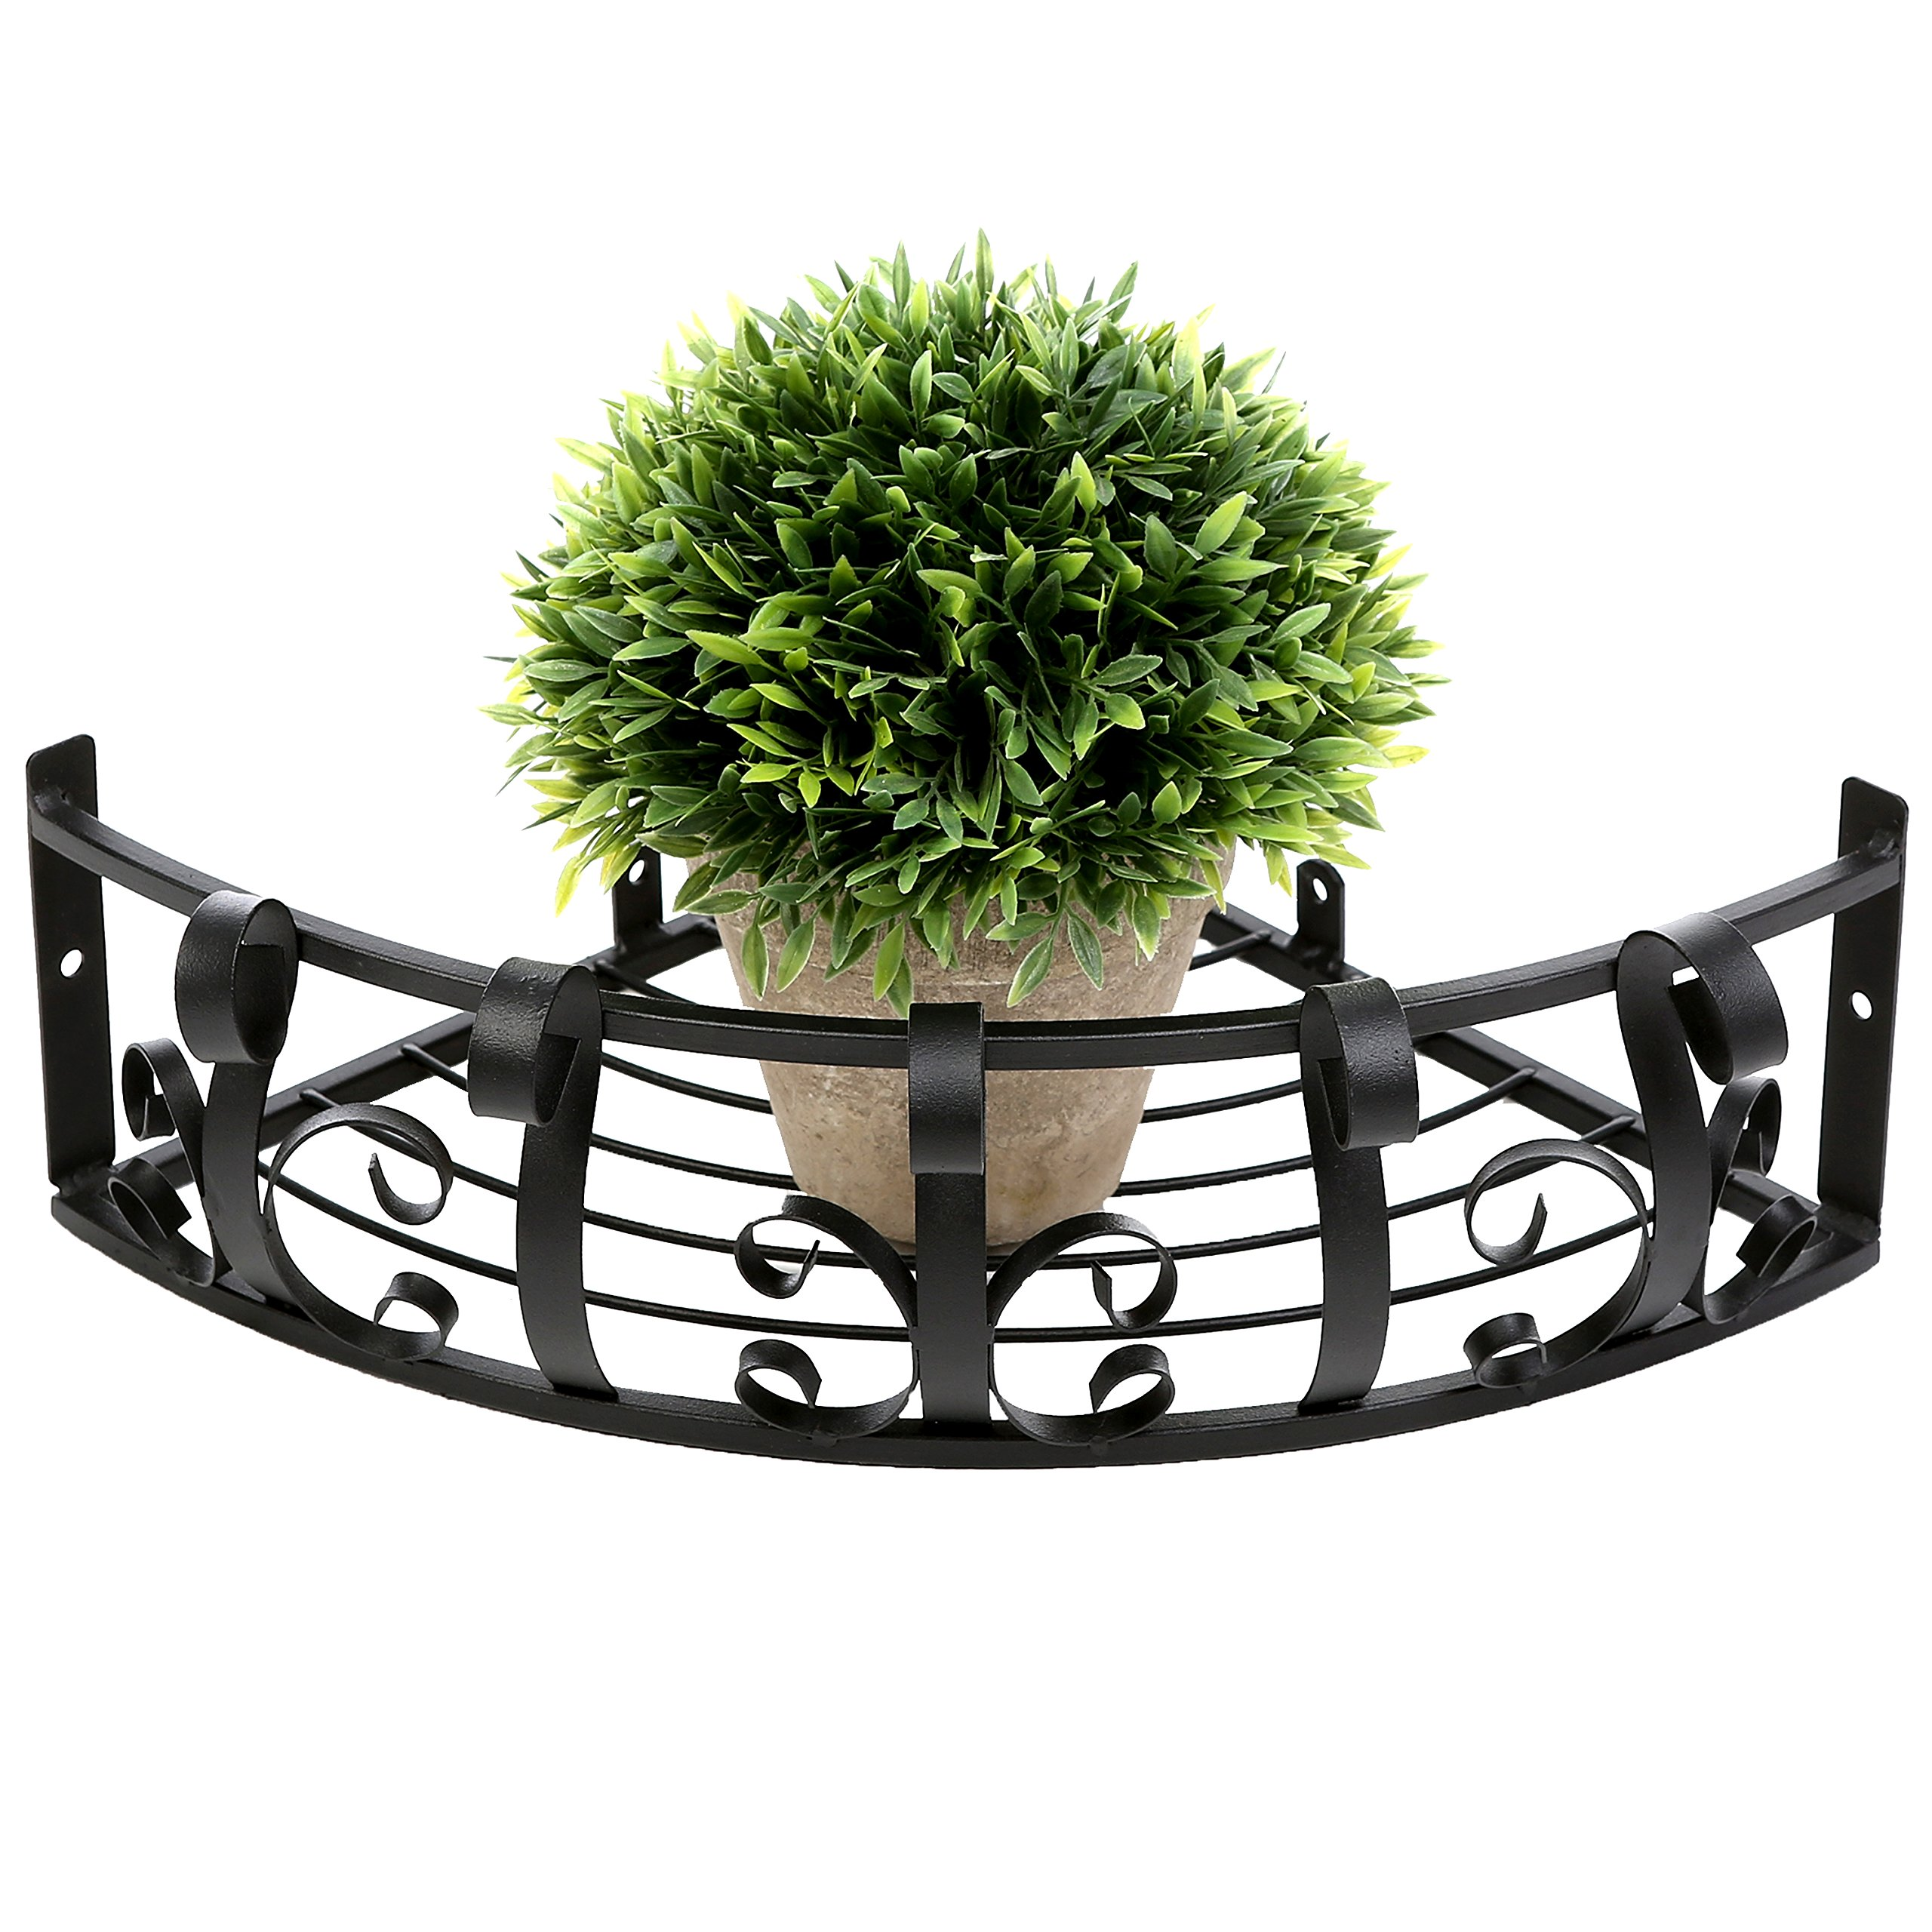 Wall Mounted Black Metal Scrollwork Design Display Floating Corner Shelf Plant Rack